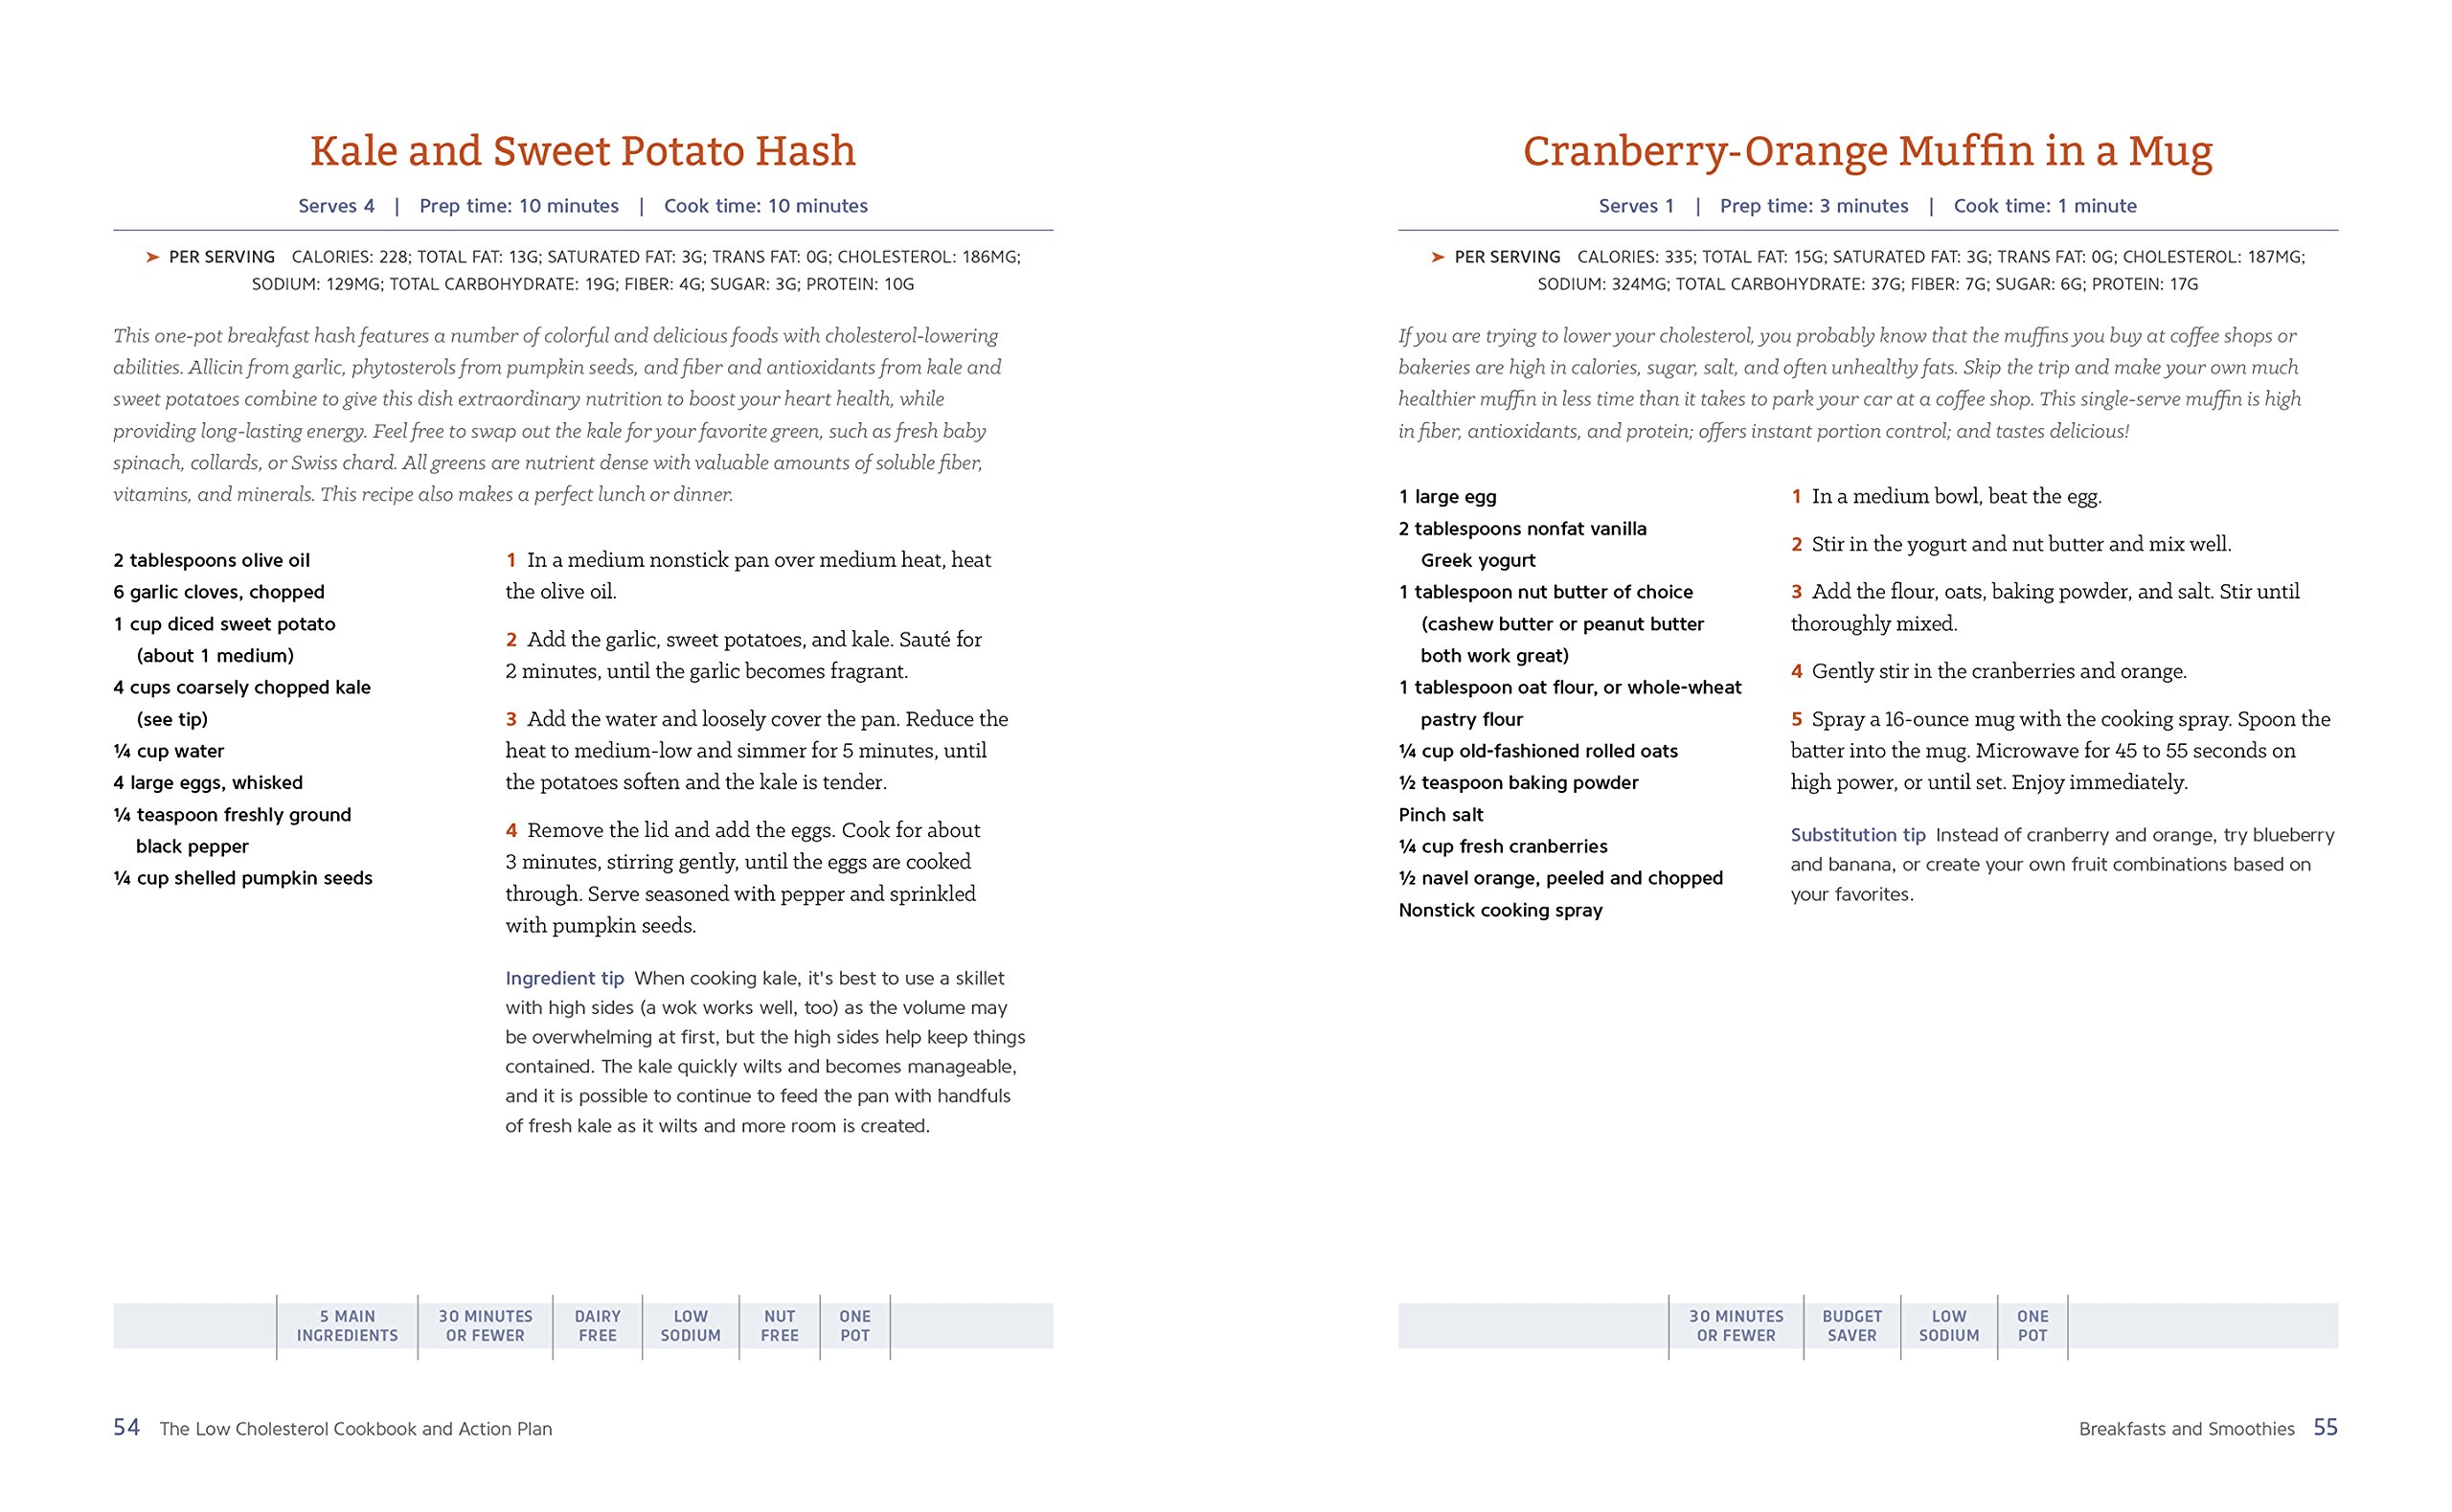 The Low Cholesterol Cookbook and Action Plan: 4 Weeks to Cut Cholesterol and Improve Heart Health